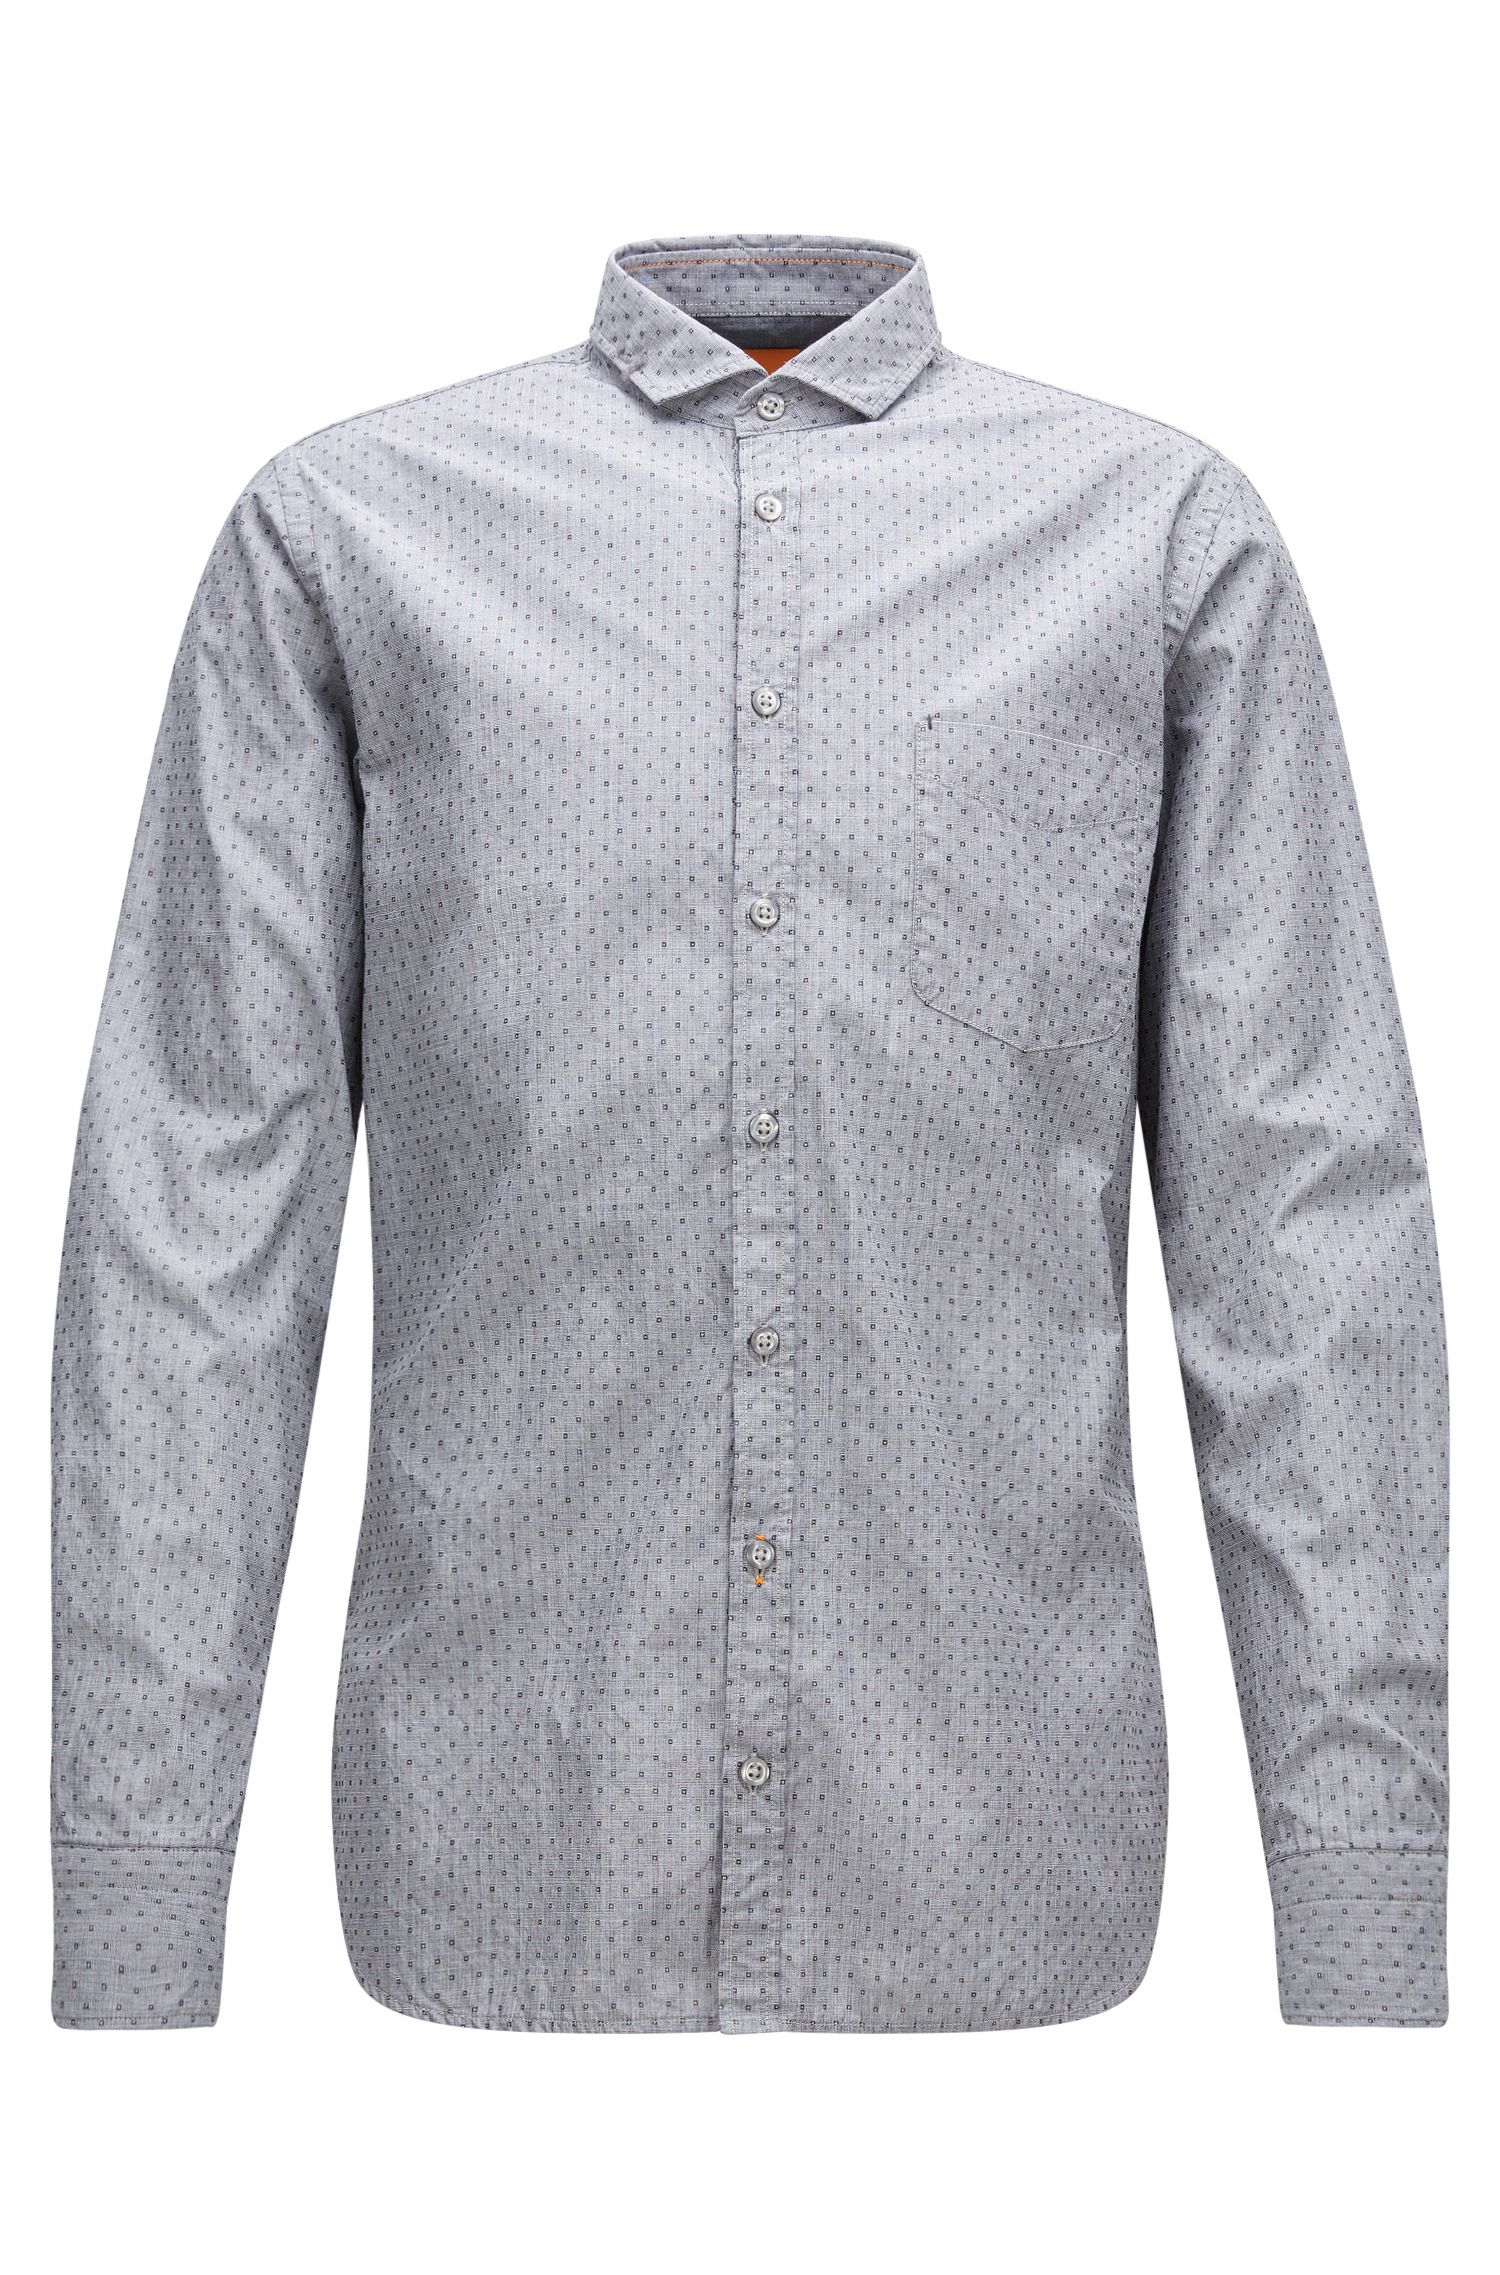 End-On-End Cotton Button Down Shirt, Slim Fit | Catitude